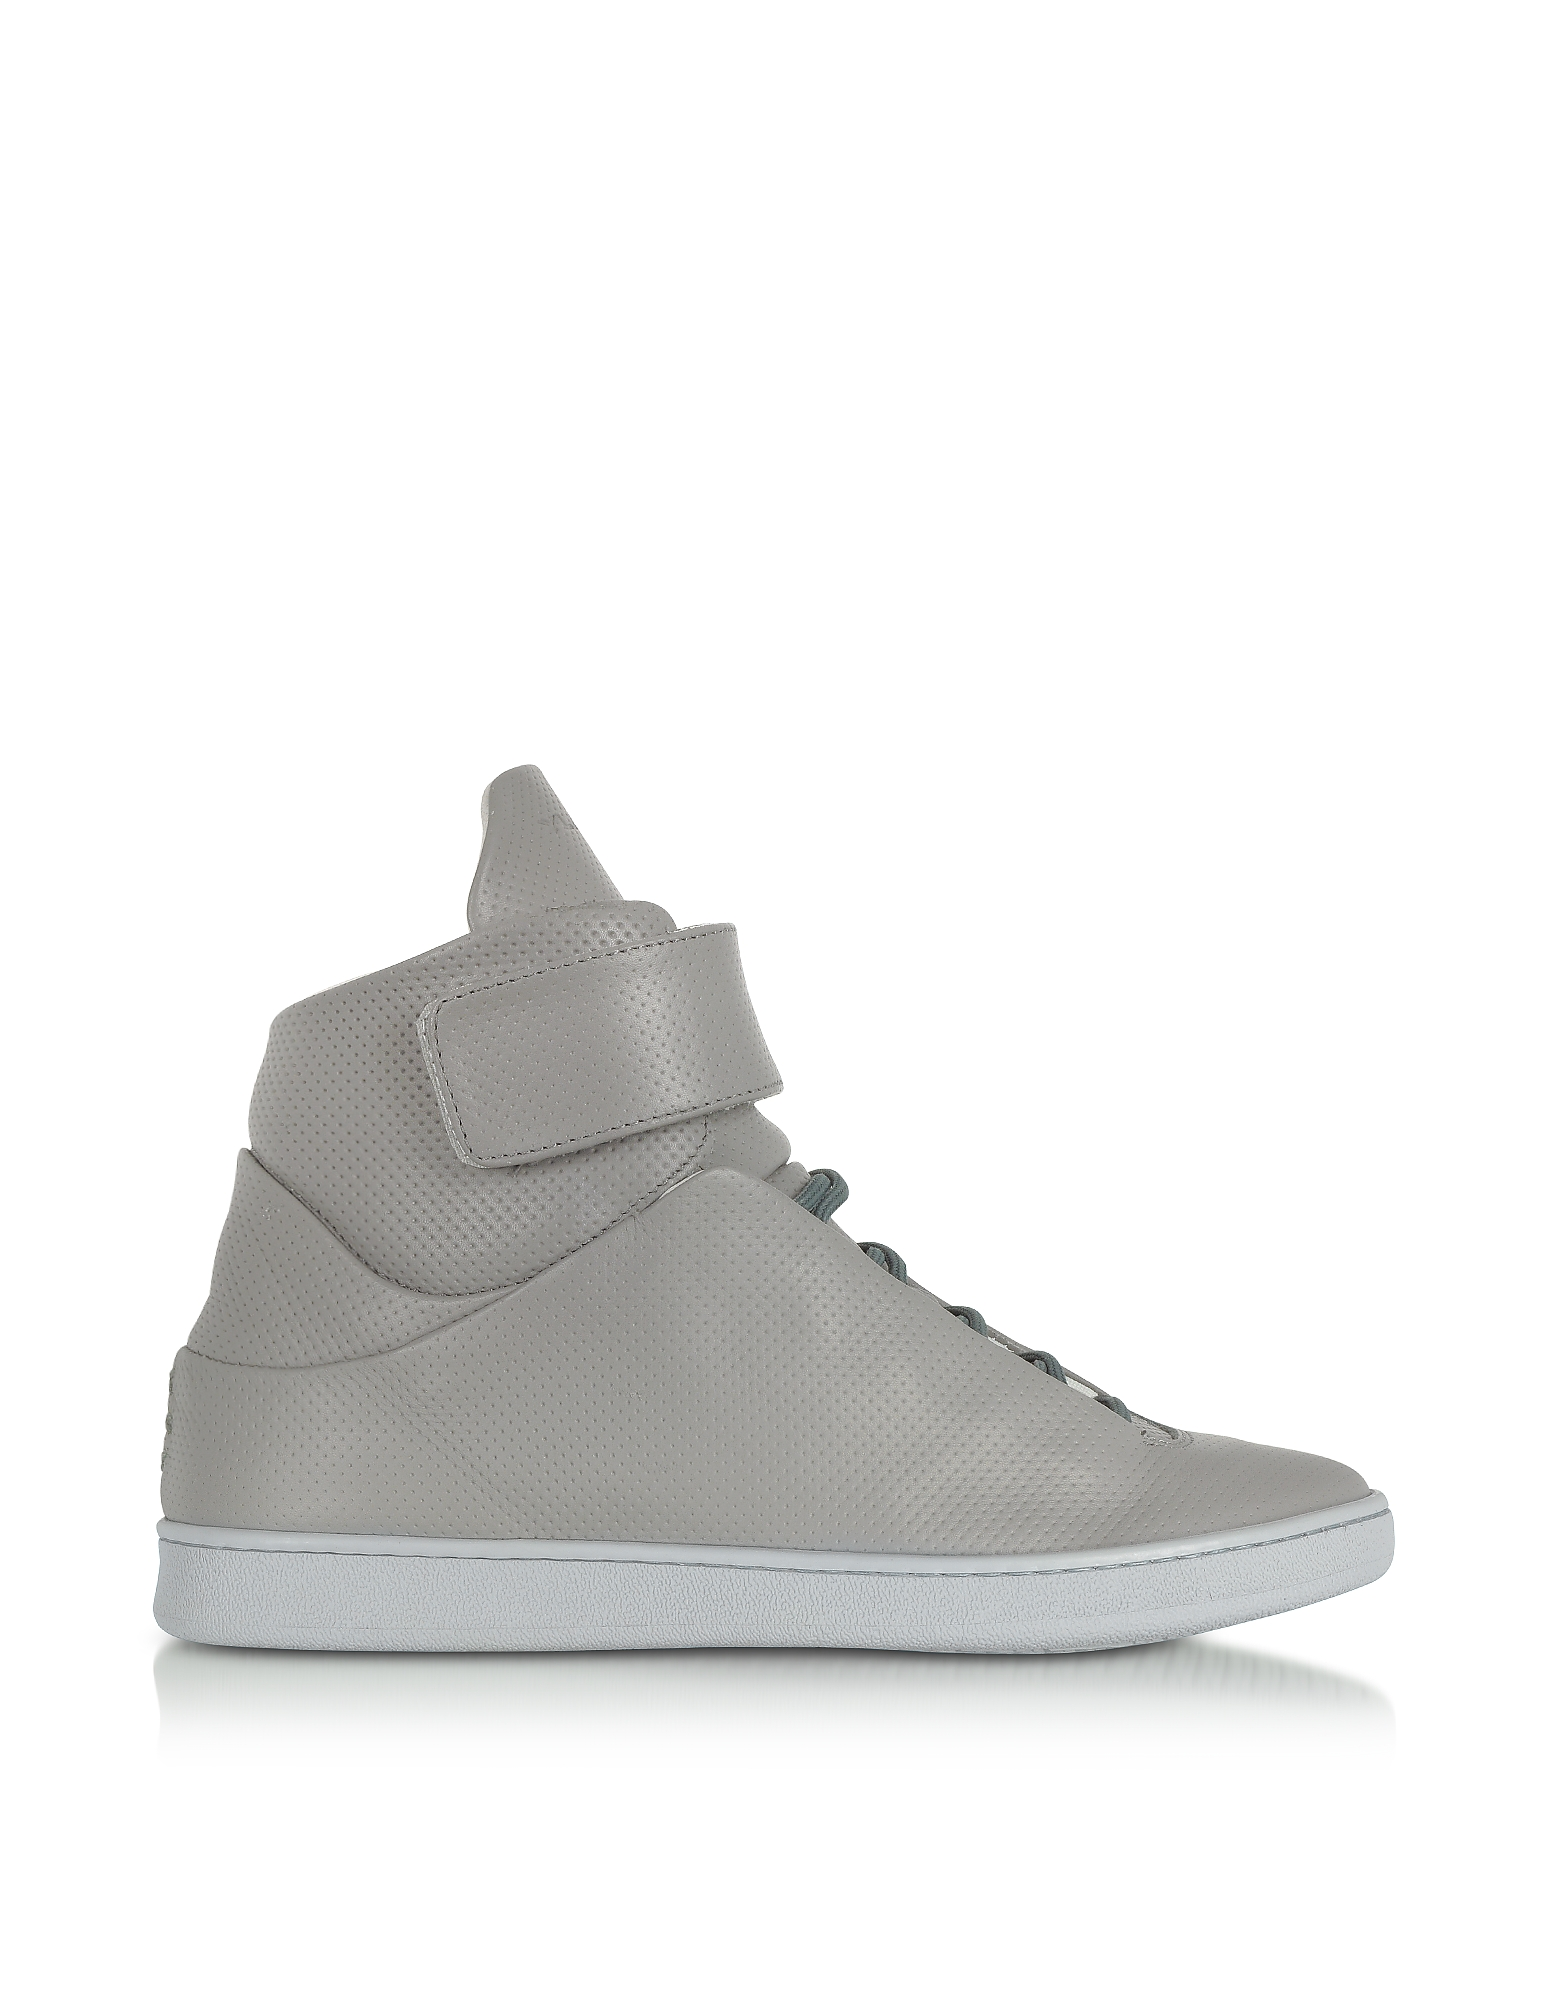 Ylati Shoes, Virgilio Grey Perforated Nappa Leather High Top Men's Sneakers